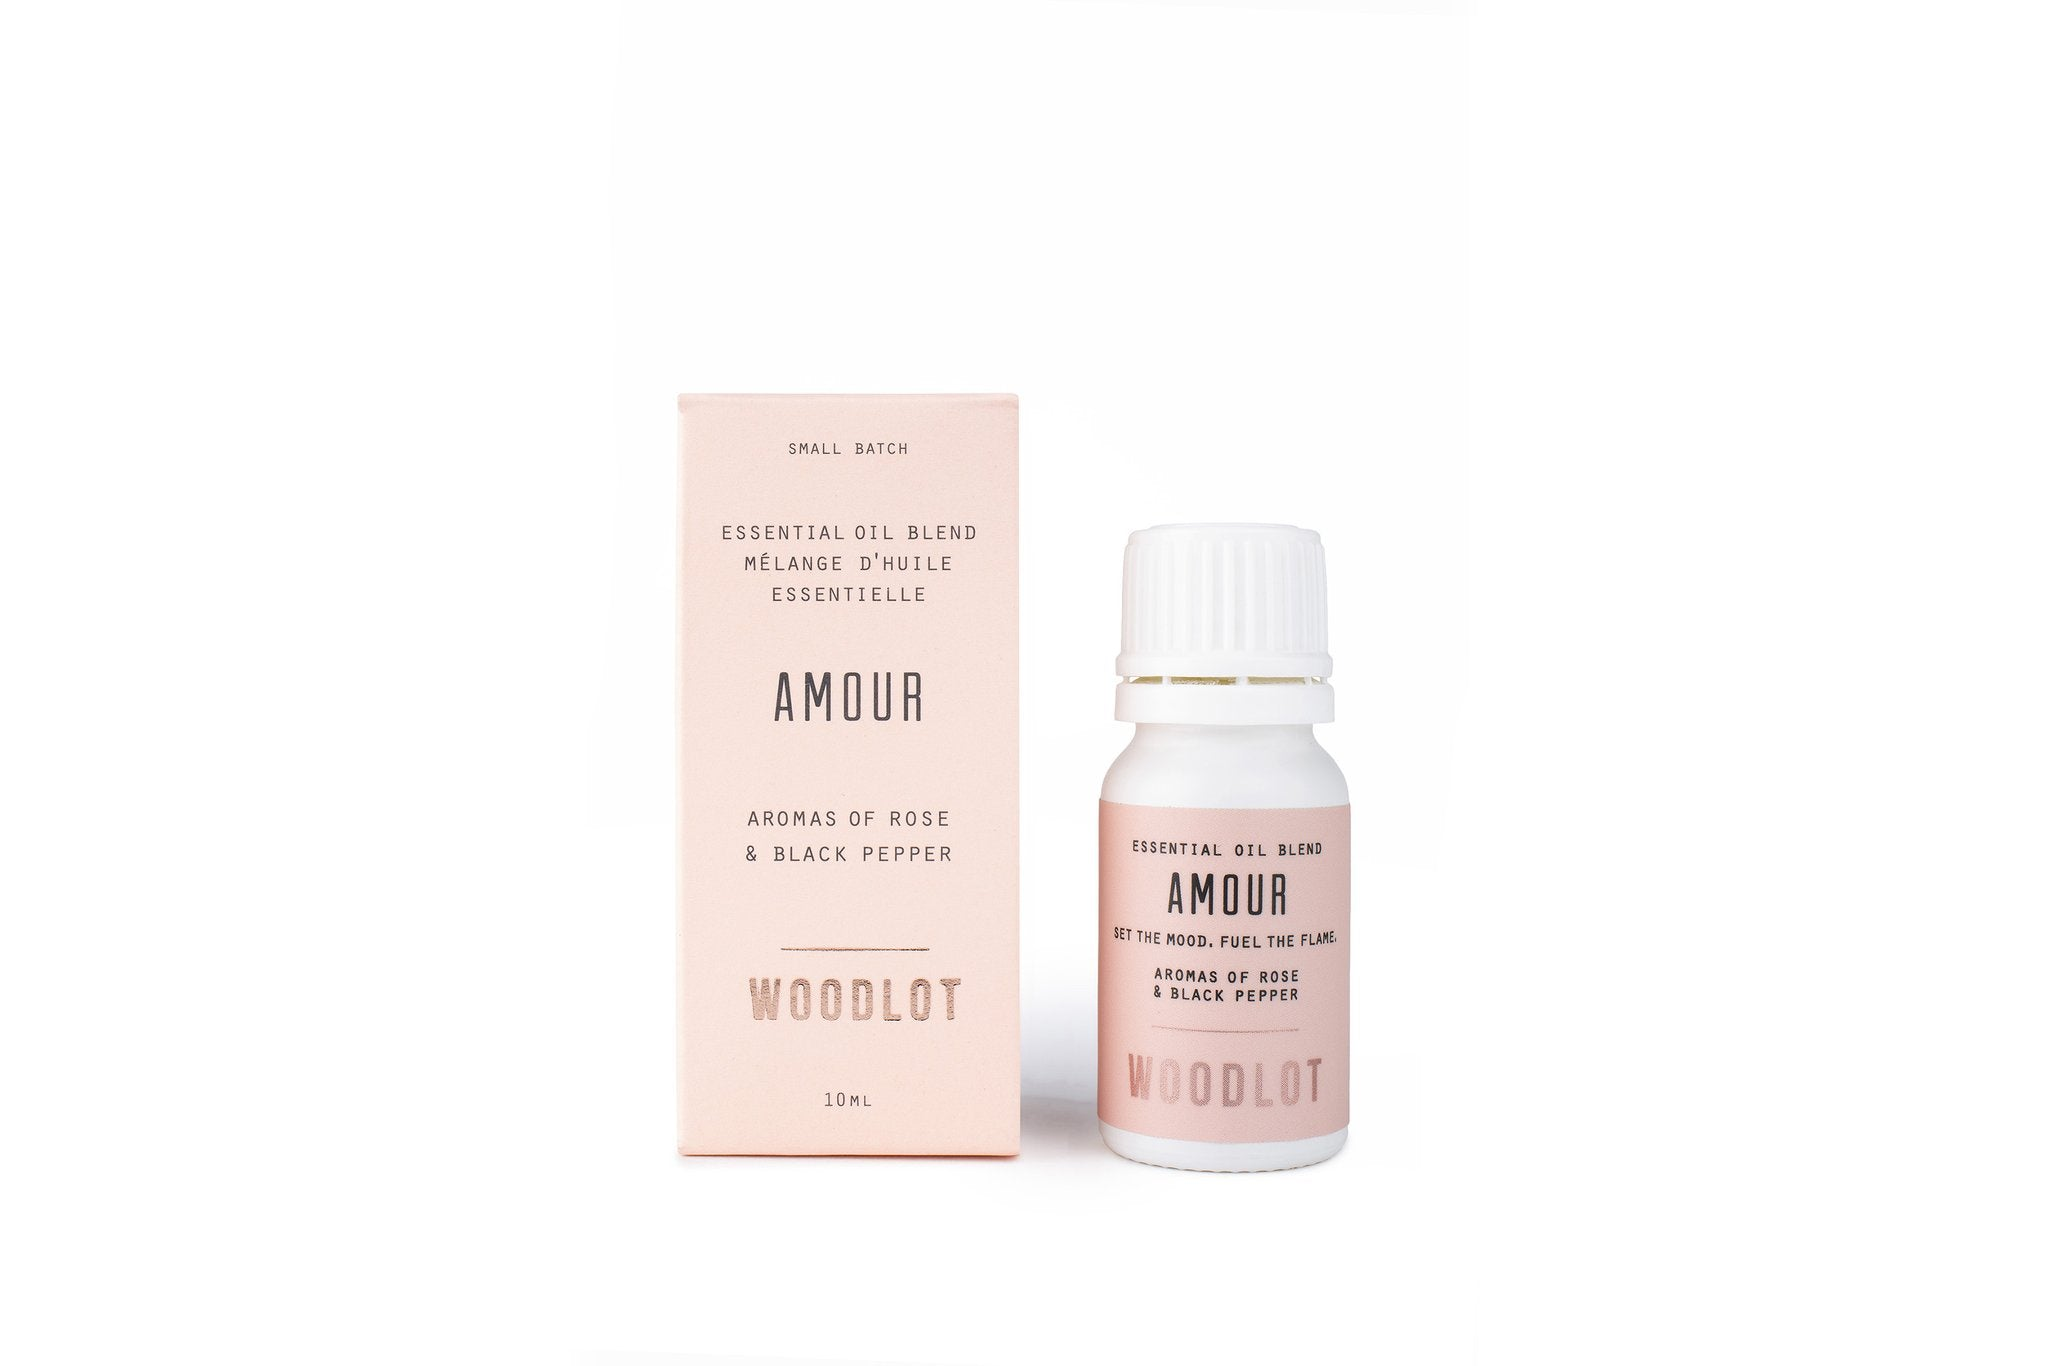 Armour Essential Oil Blend by Woodlot